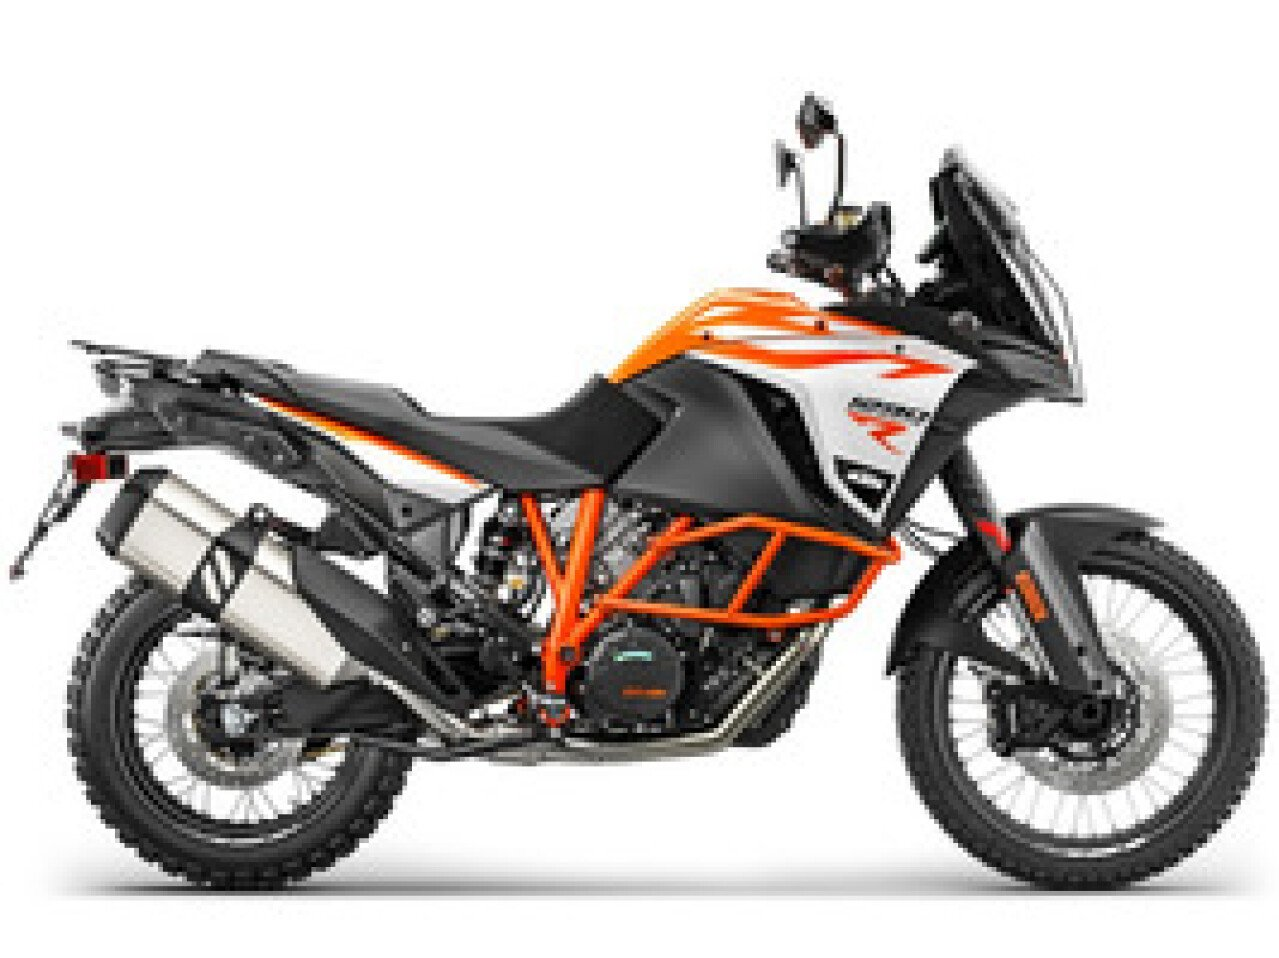 Ktm Motorcycles For Sale Fresno Ca >> 2017 Ktm 1290 For Sale Near Fresno California 93710 Motorcycles